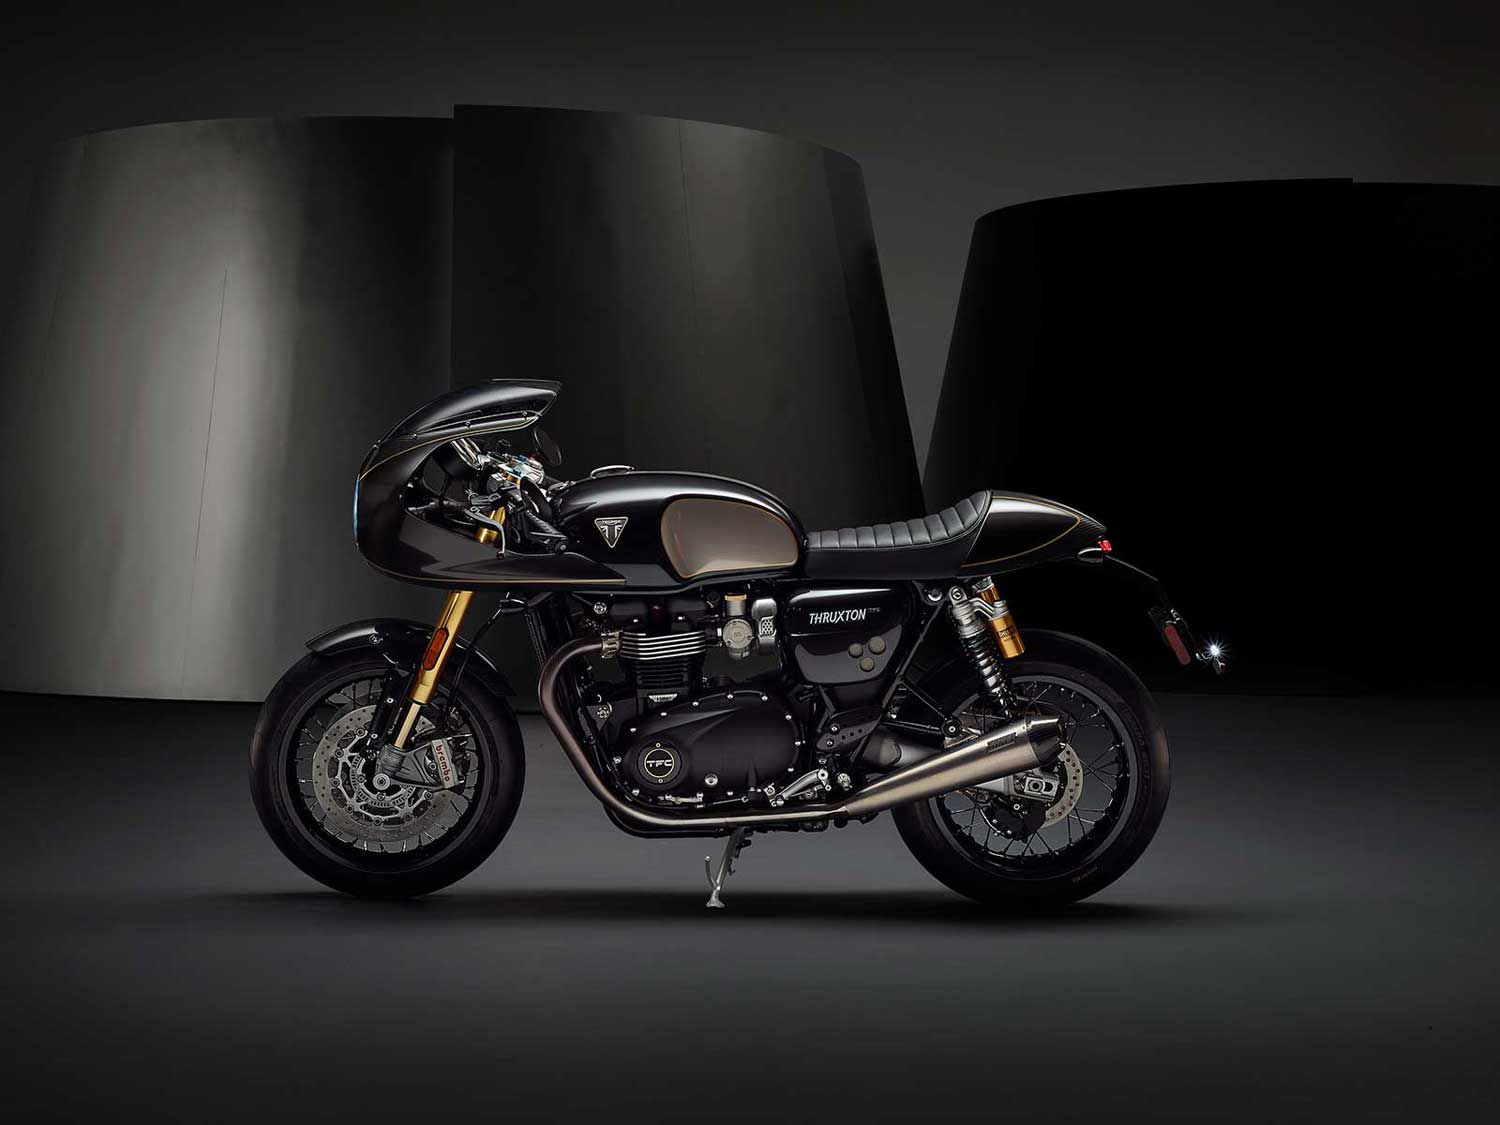 The Triumph Thruxton TFC has classic looks, modern performance, and has been a dream bike of mine ever since I laid eyes on one.